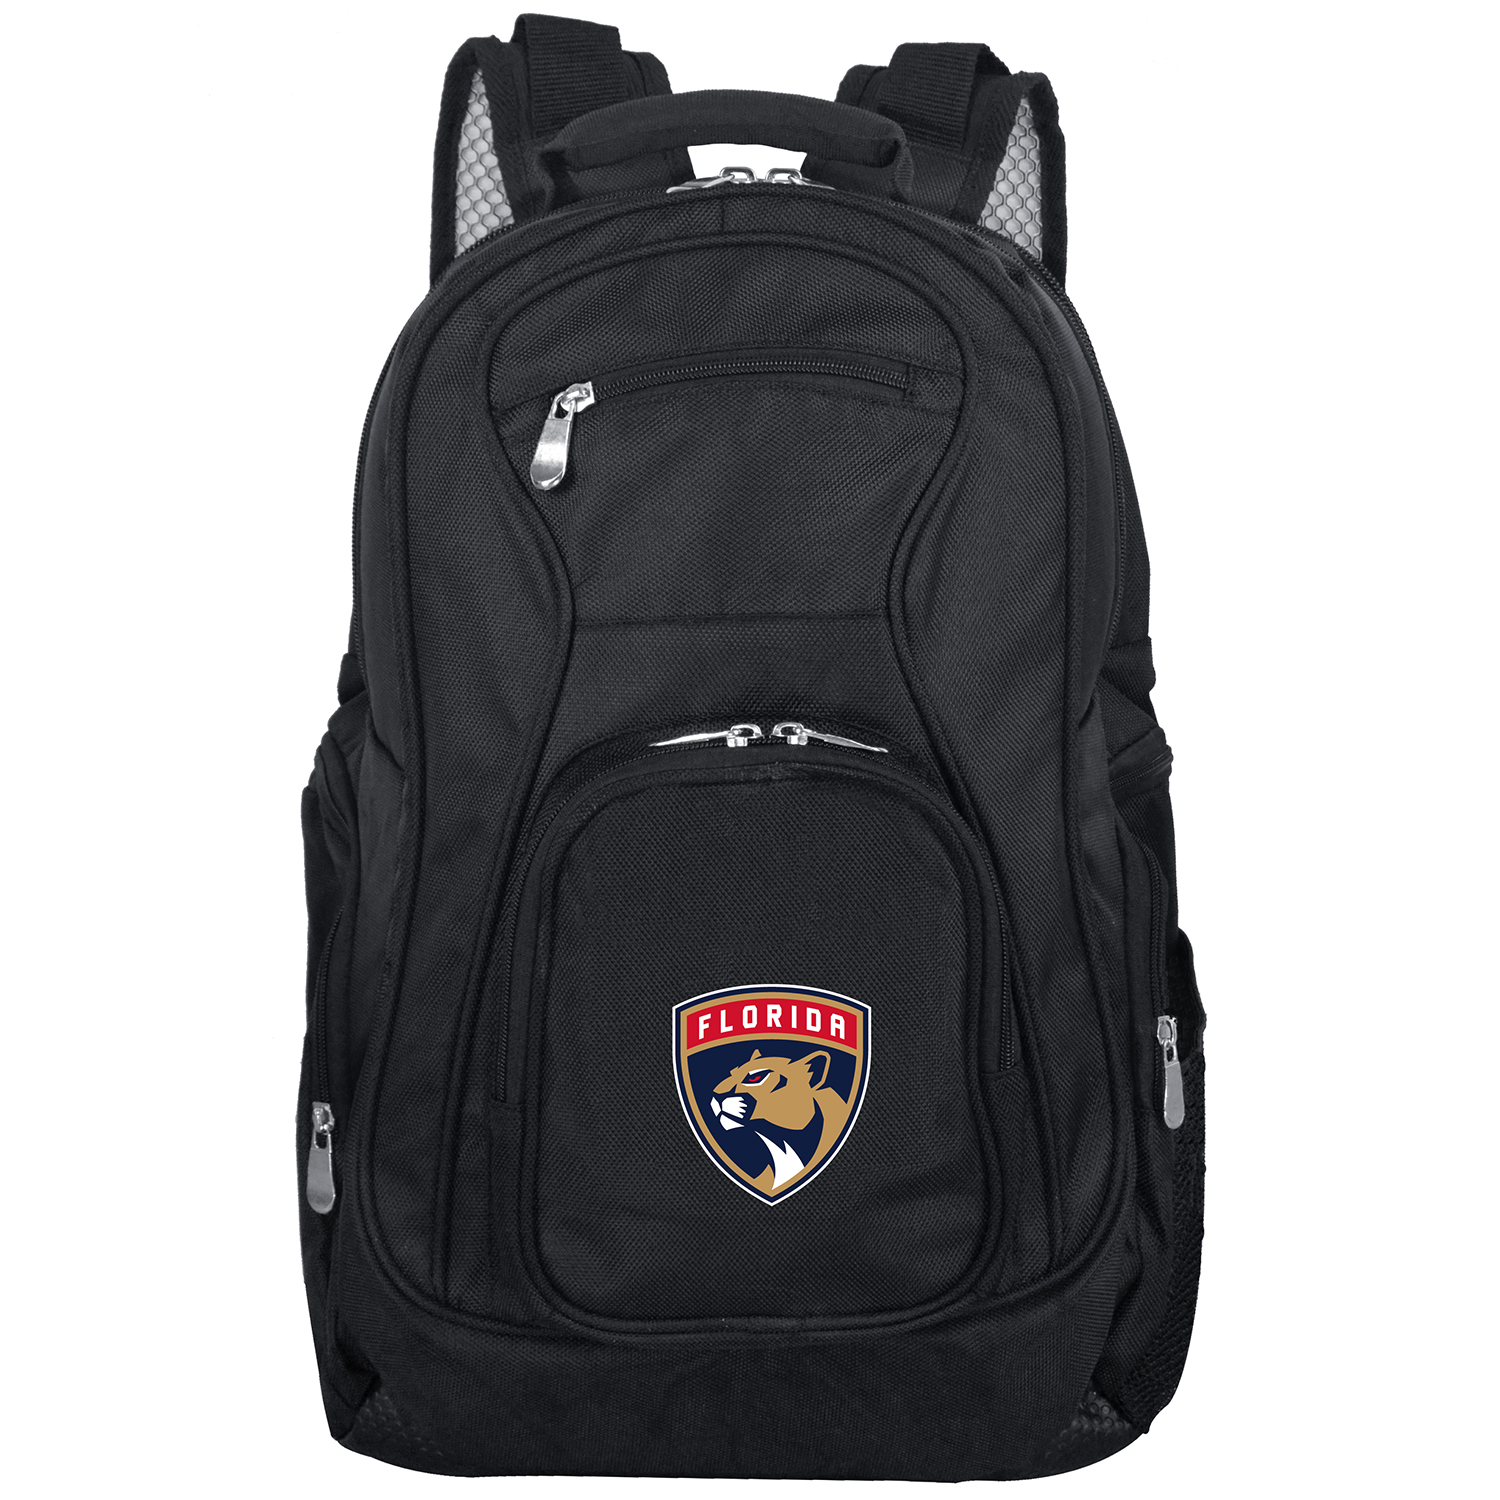 "Florida Panthers 19"" Laptop Travel Backpack - Black - No Size"